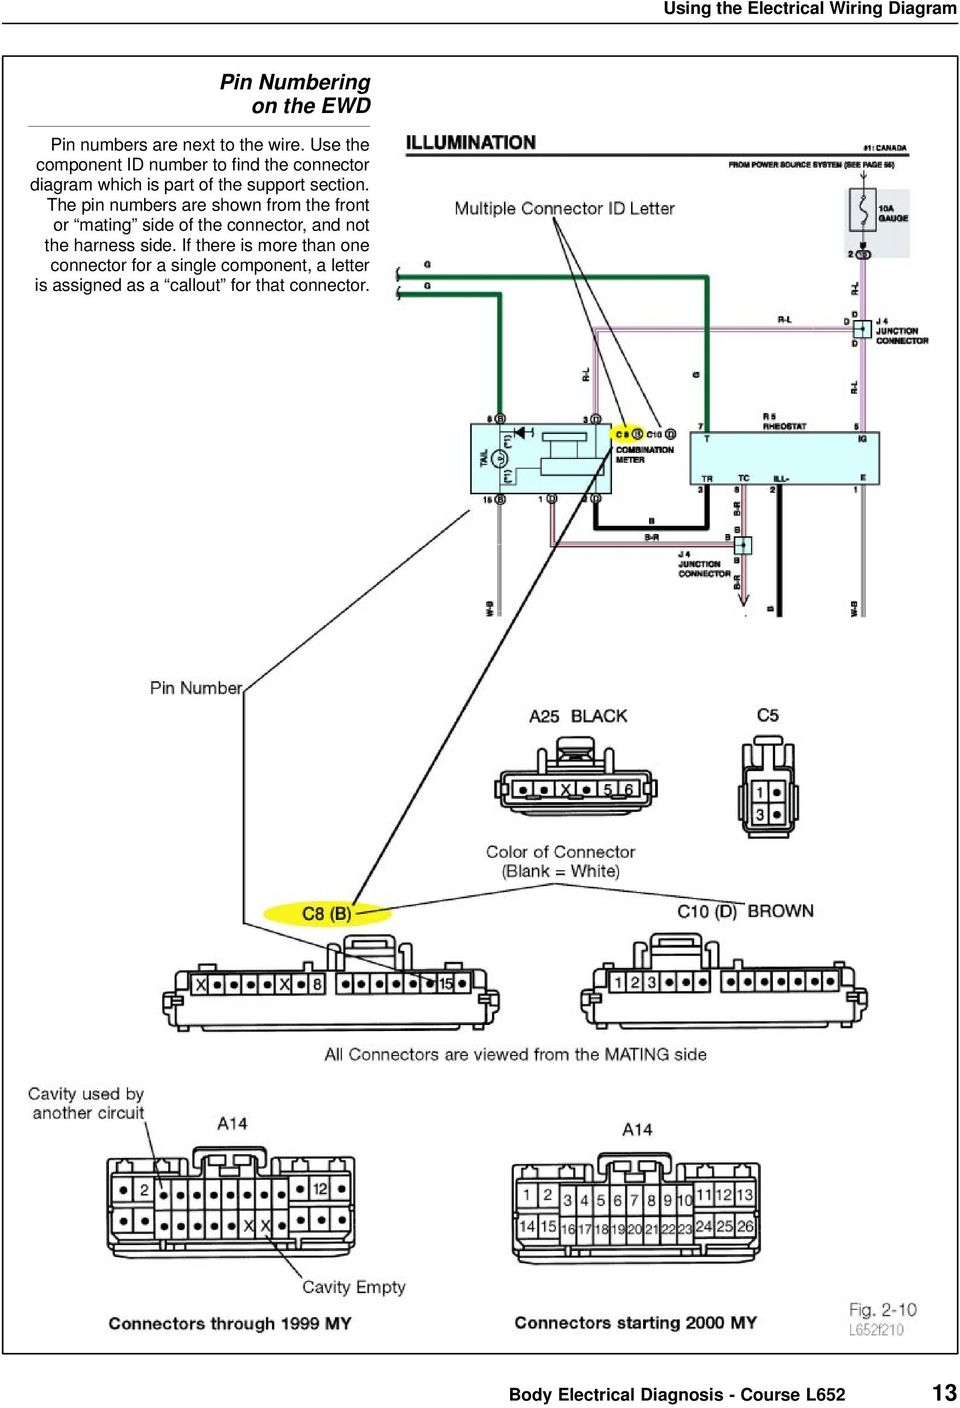 Using The Electrical Wiring Diagram Pdf Single Line Further One Pin Numbers Are Shown From Front Or Mating Side Of Connector And